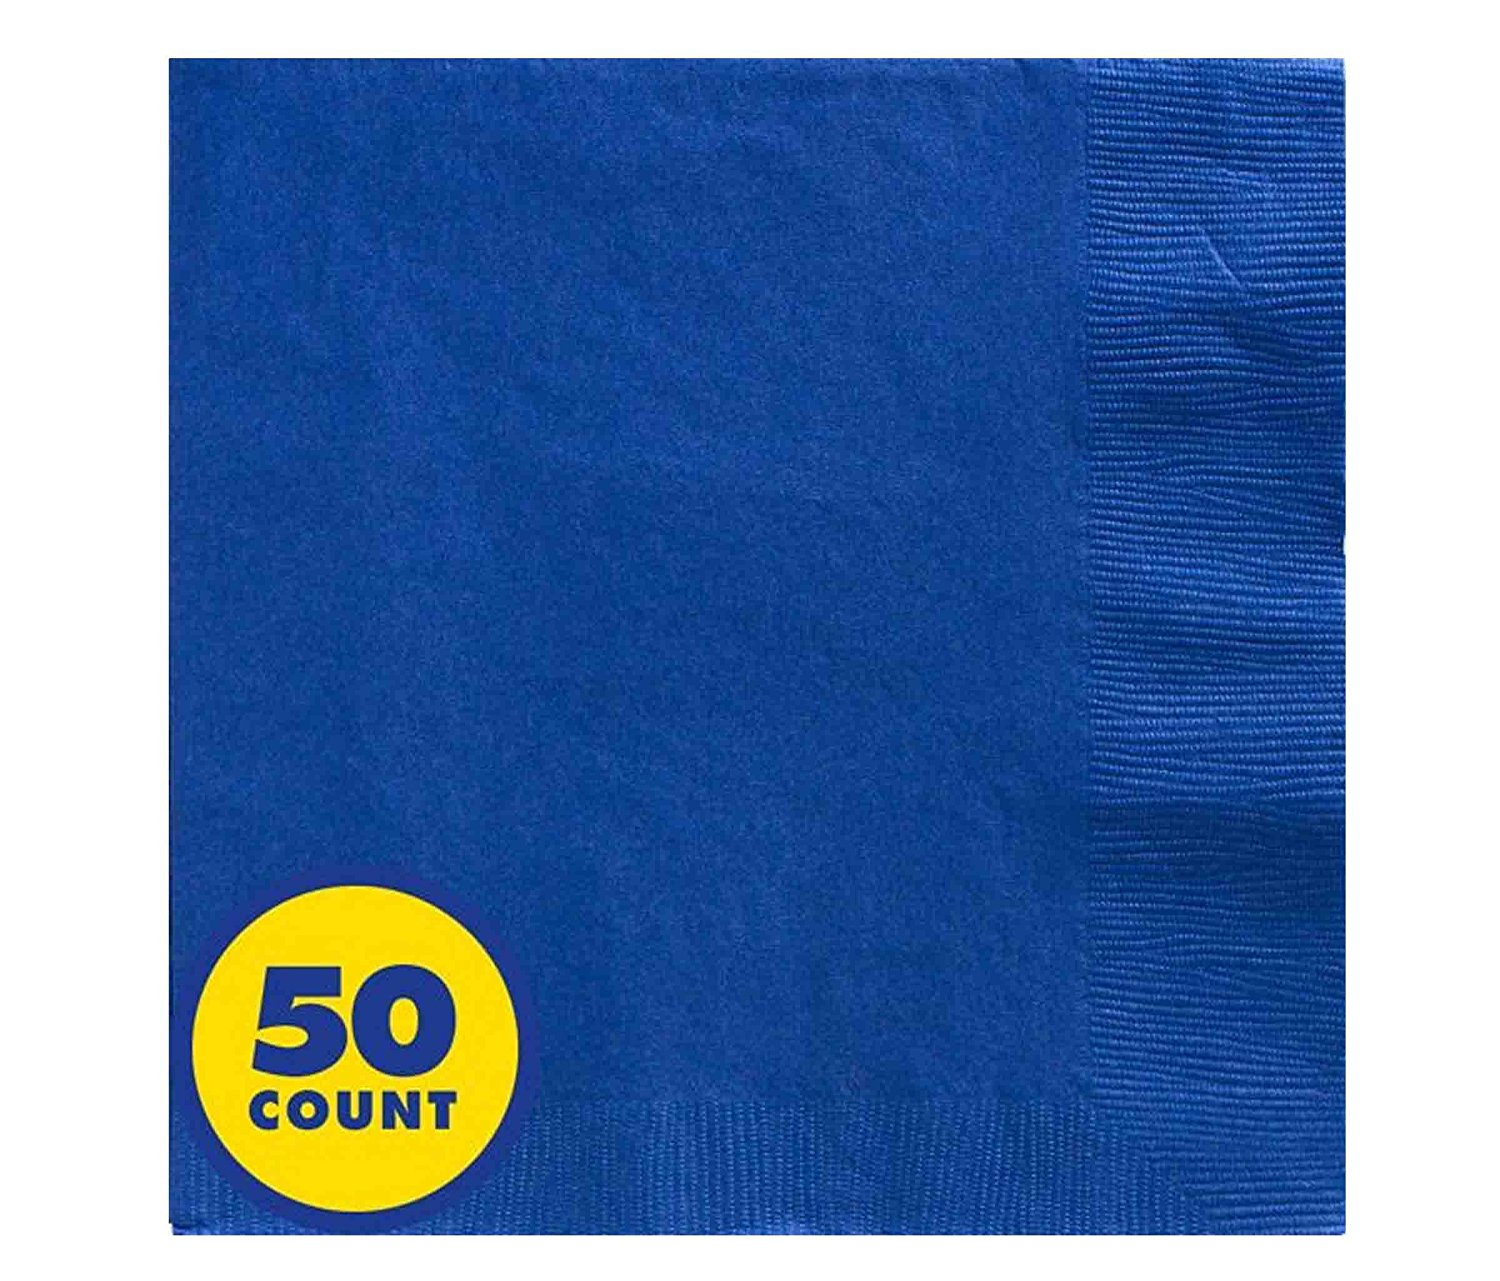 Mozlly Multipack - Amscan Bright Royal Blue Dinner Napkins Big Party Pack - 2 Ply - 7.6 x 7.6 inch - Party Tableware (50pc Set) (Pack of 6)